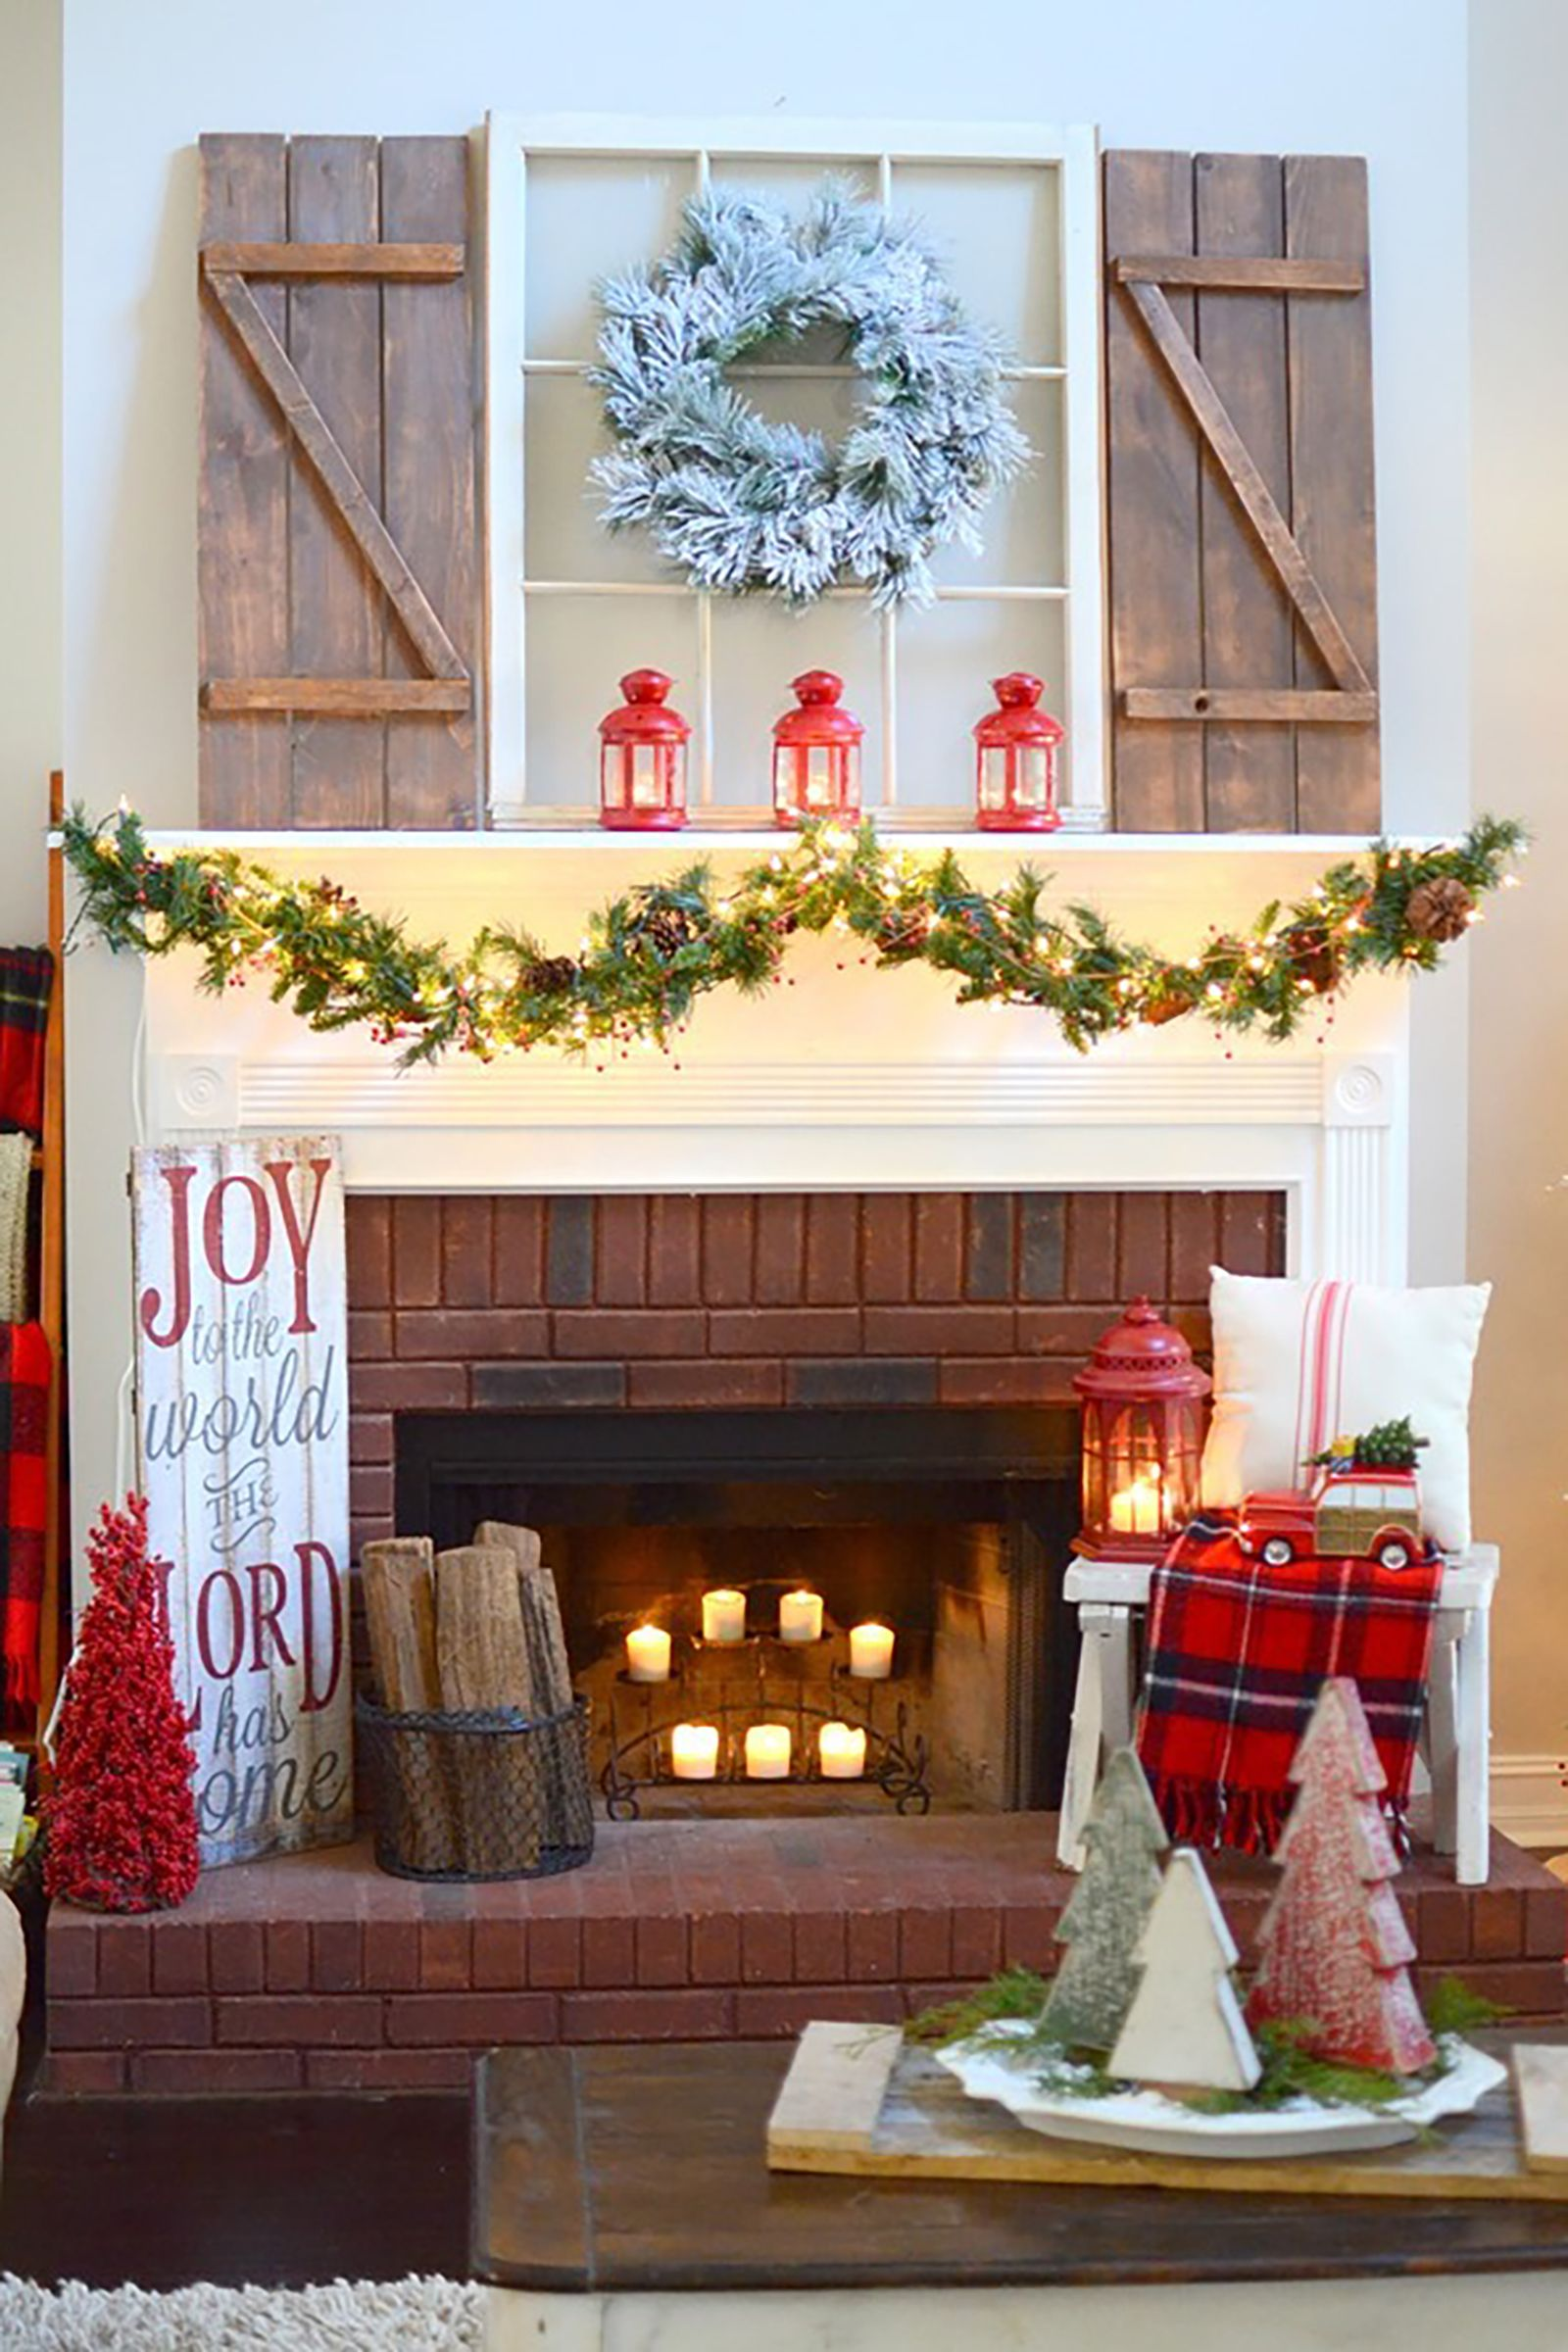 50 christmas mantel decorations ideas for holiday fireplace mantel decorating